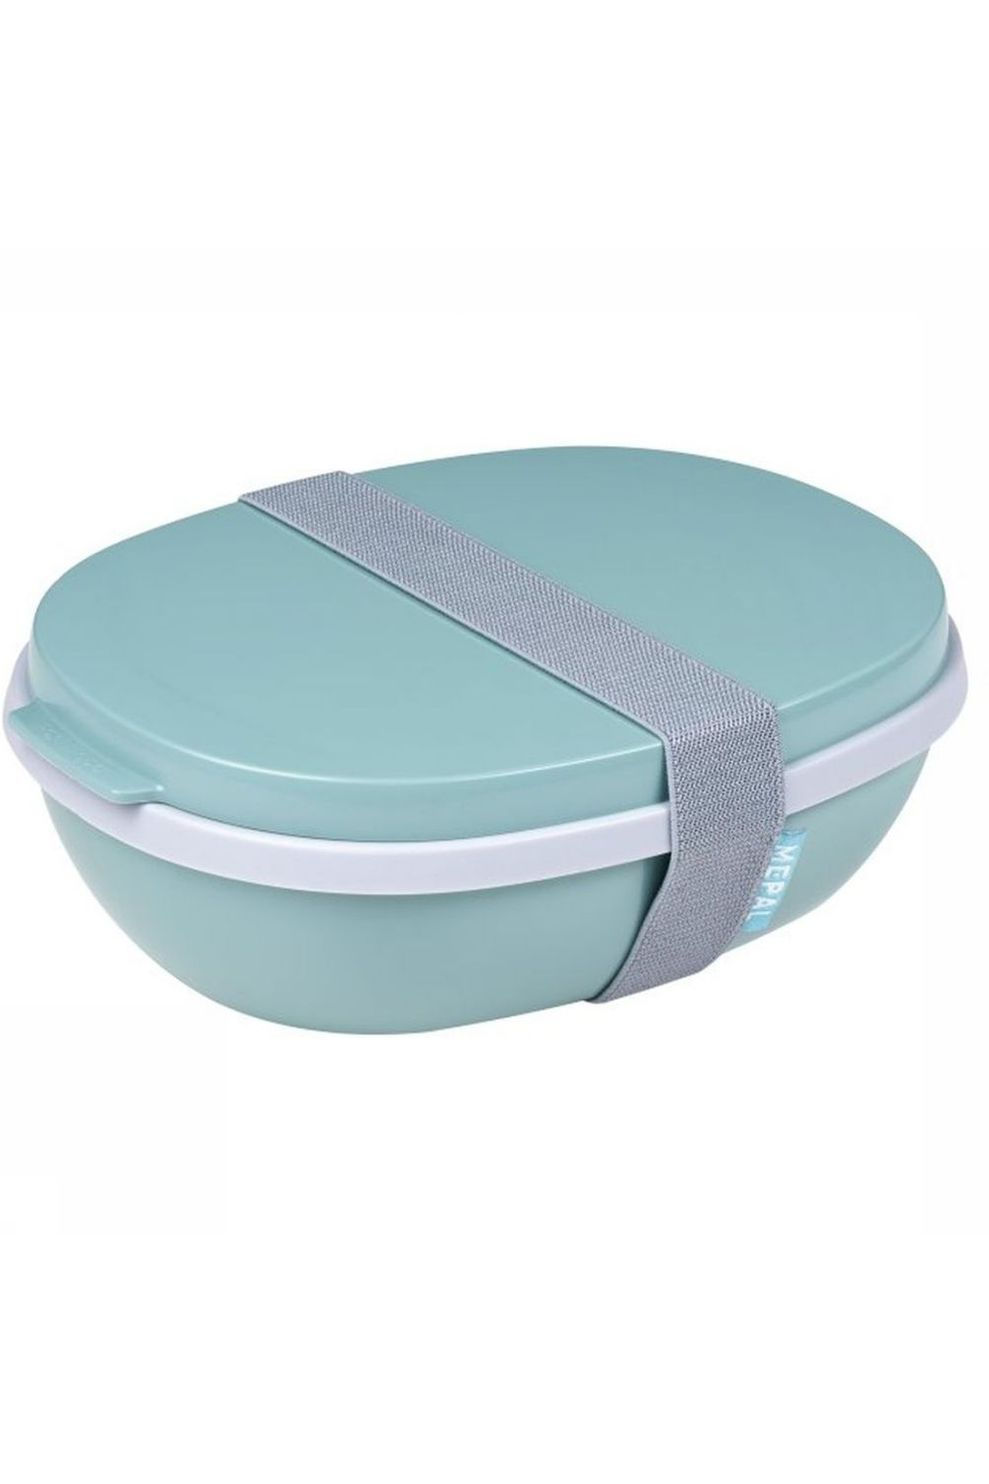 Mepal Lunchbox To Go Elipse - Blauw